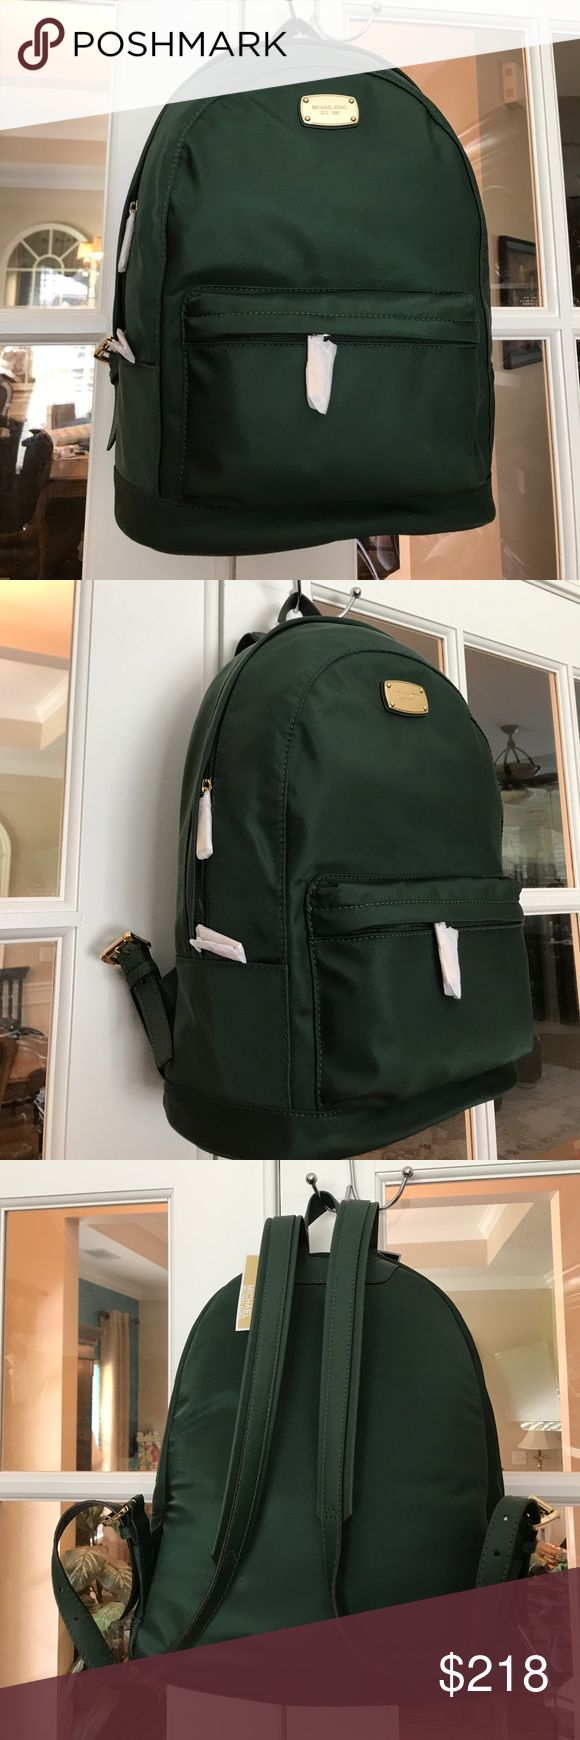 """Michael Kors Green Backpack JUST IN‼️-  Large green Michael Kors Backpack has gold colored trimming.  (Color is """"moss."""")    """"Michael Kors"""" is engraved on the name plate, zippers and the buckles.  Interior is fully lined with beautiful Michael Kors fabric and has many pockets on both sides of the interior compartment.  One zips.  There is also a front zippered pocket.  Roughly 11.5"""" x 15"""" x 6.""""  💕  (There are little scratches on the nameplate, but not significant. You have to look for them…"""